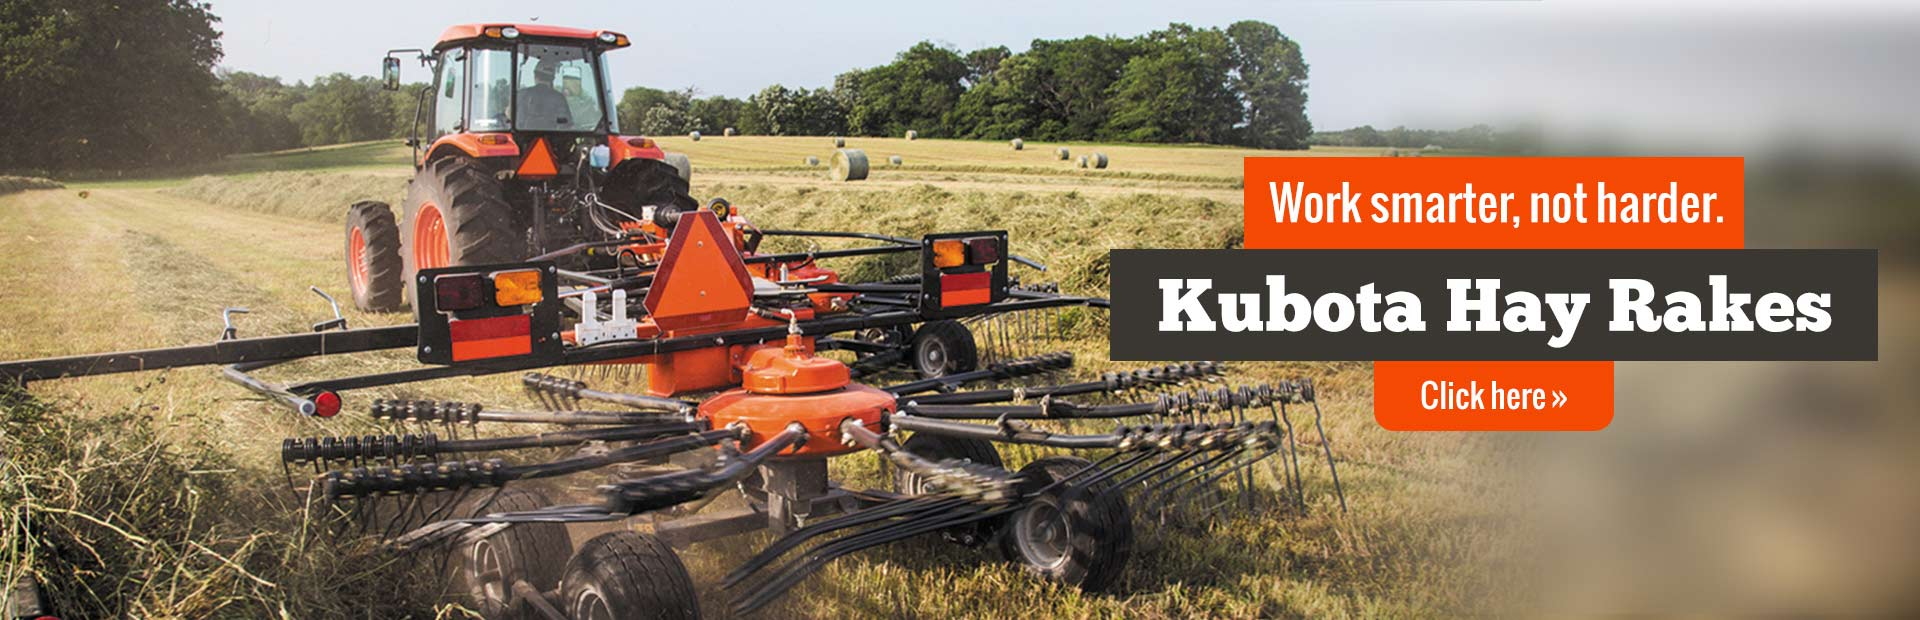 Work smarter and not harder with Kubota hay rakes! Click here to view our selection.